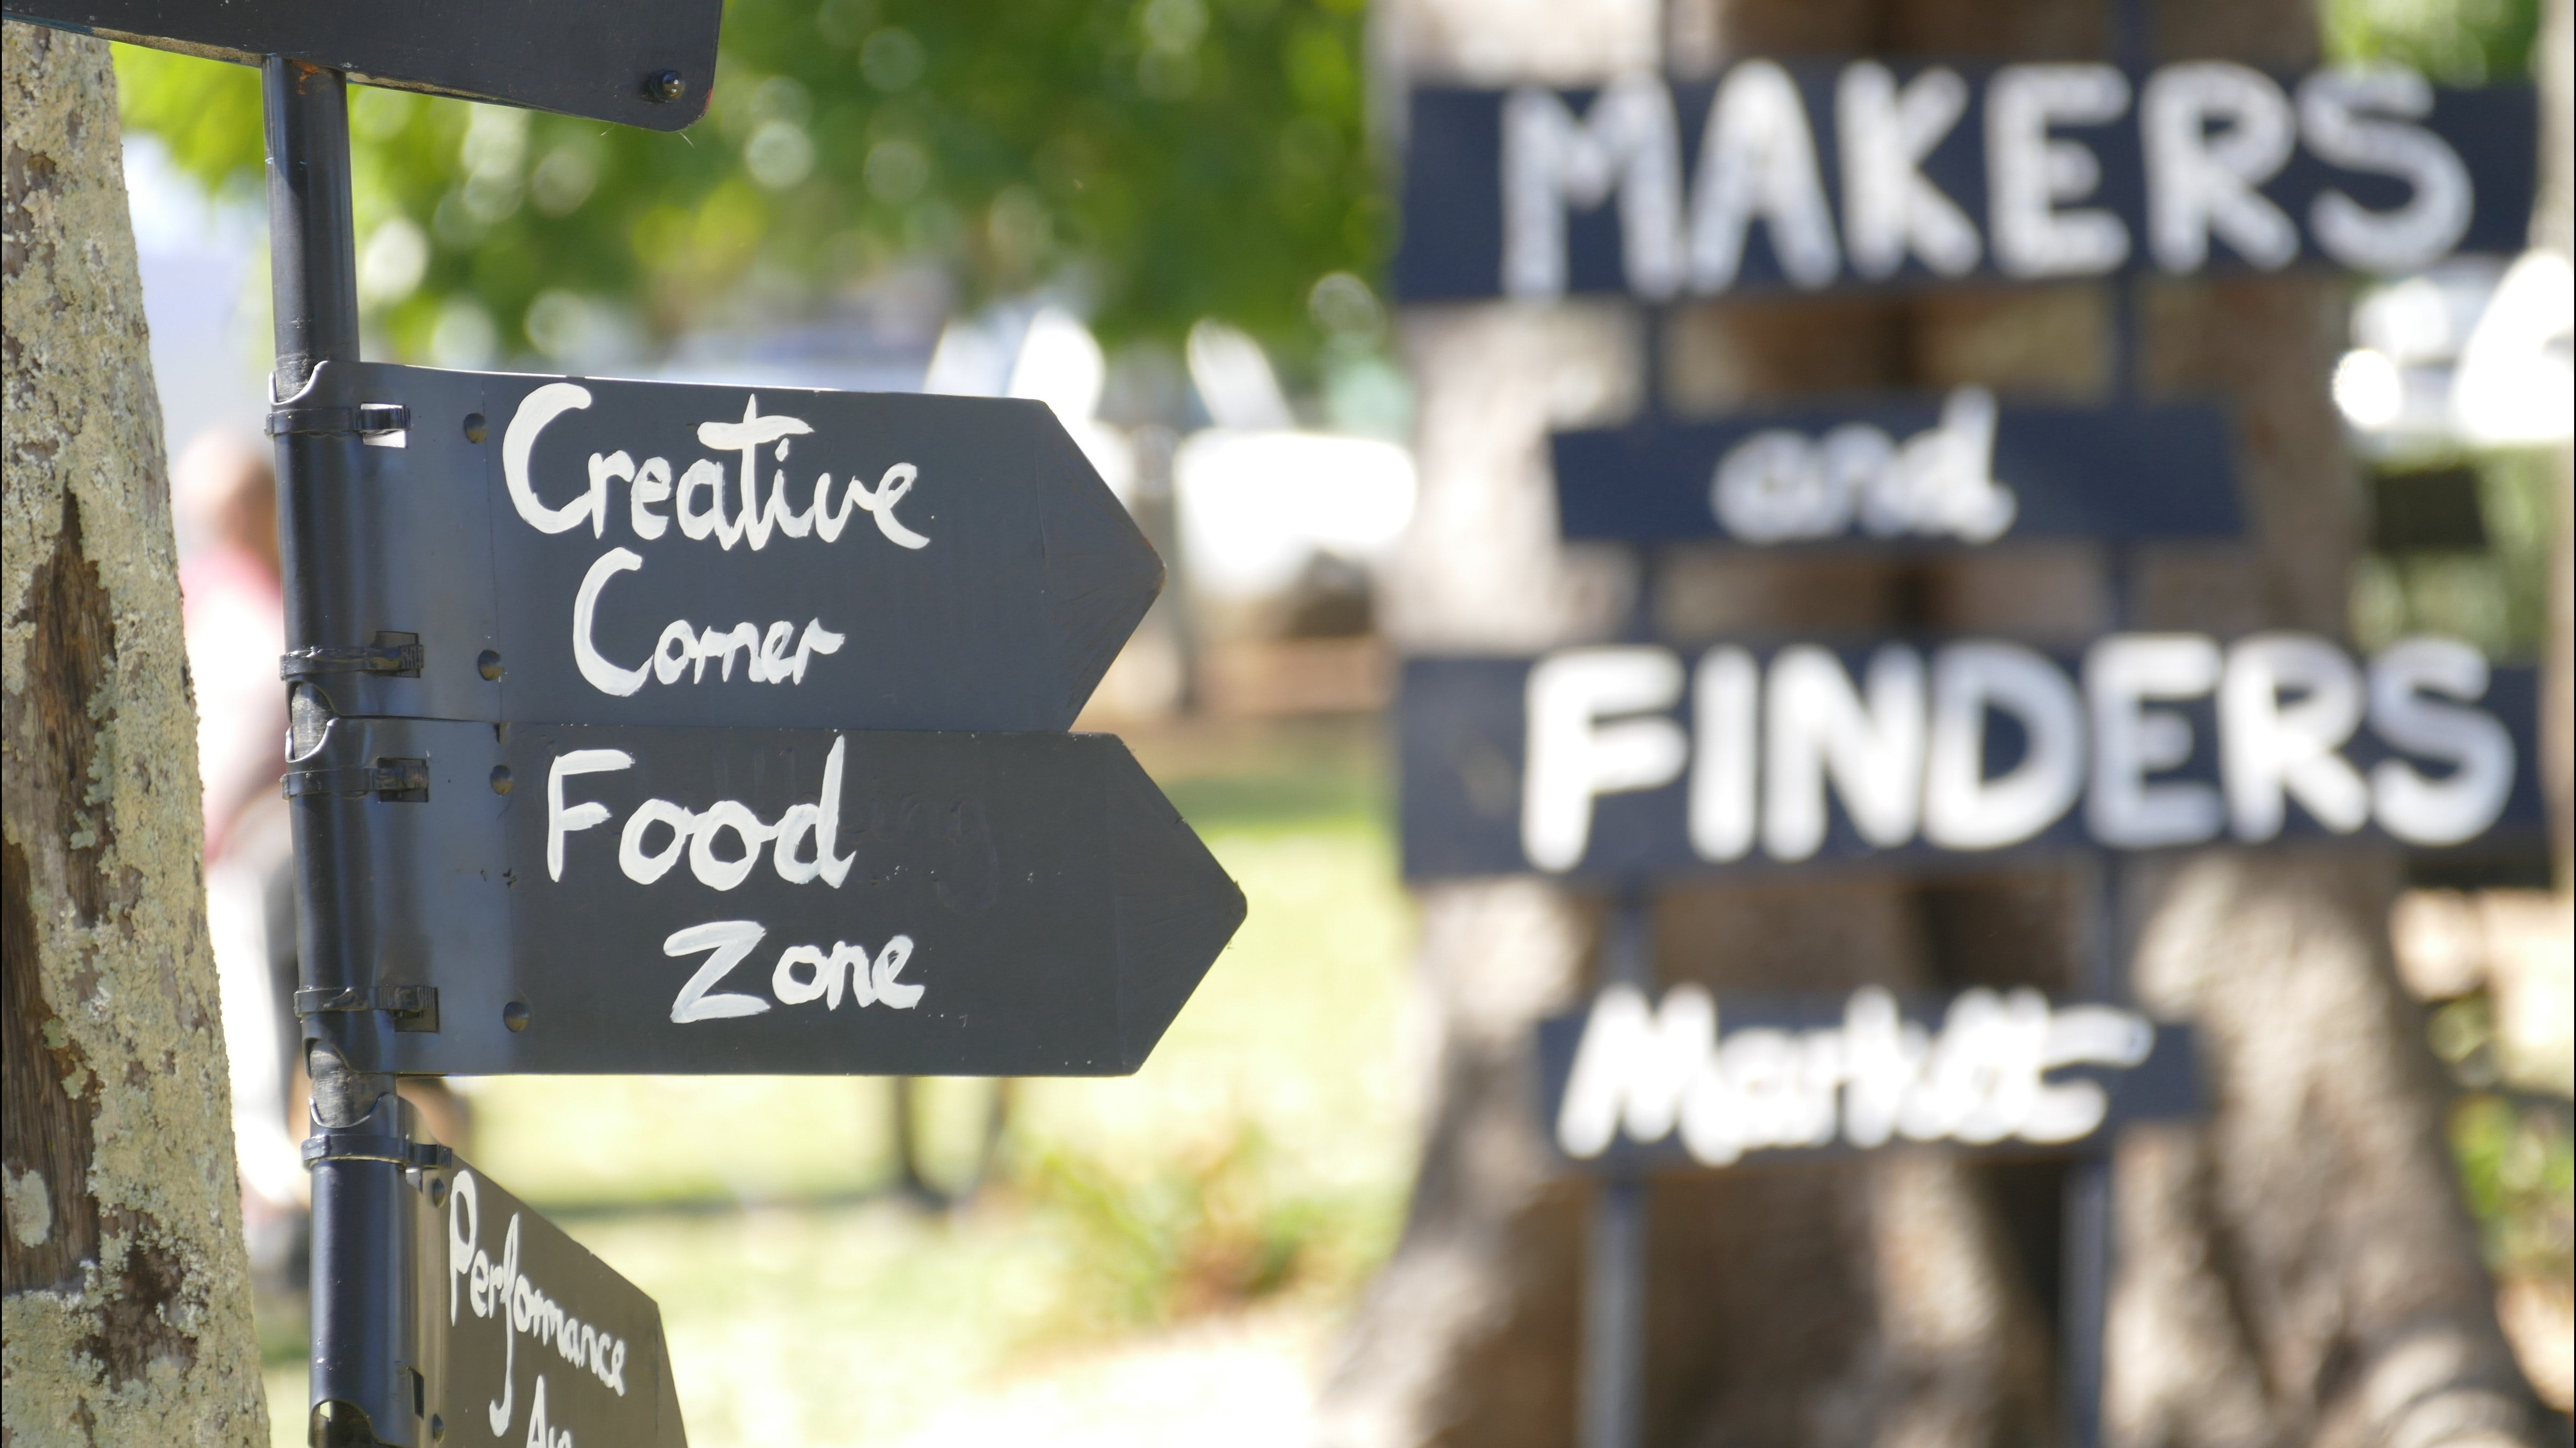 Makers and Finders Market Murwillumbah - Yarra Valley Accommodation